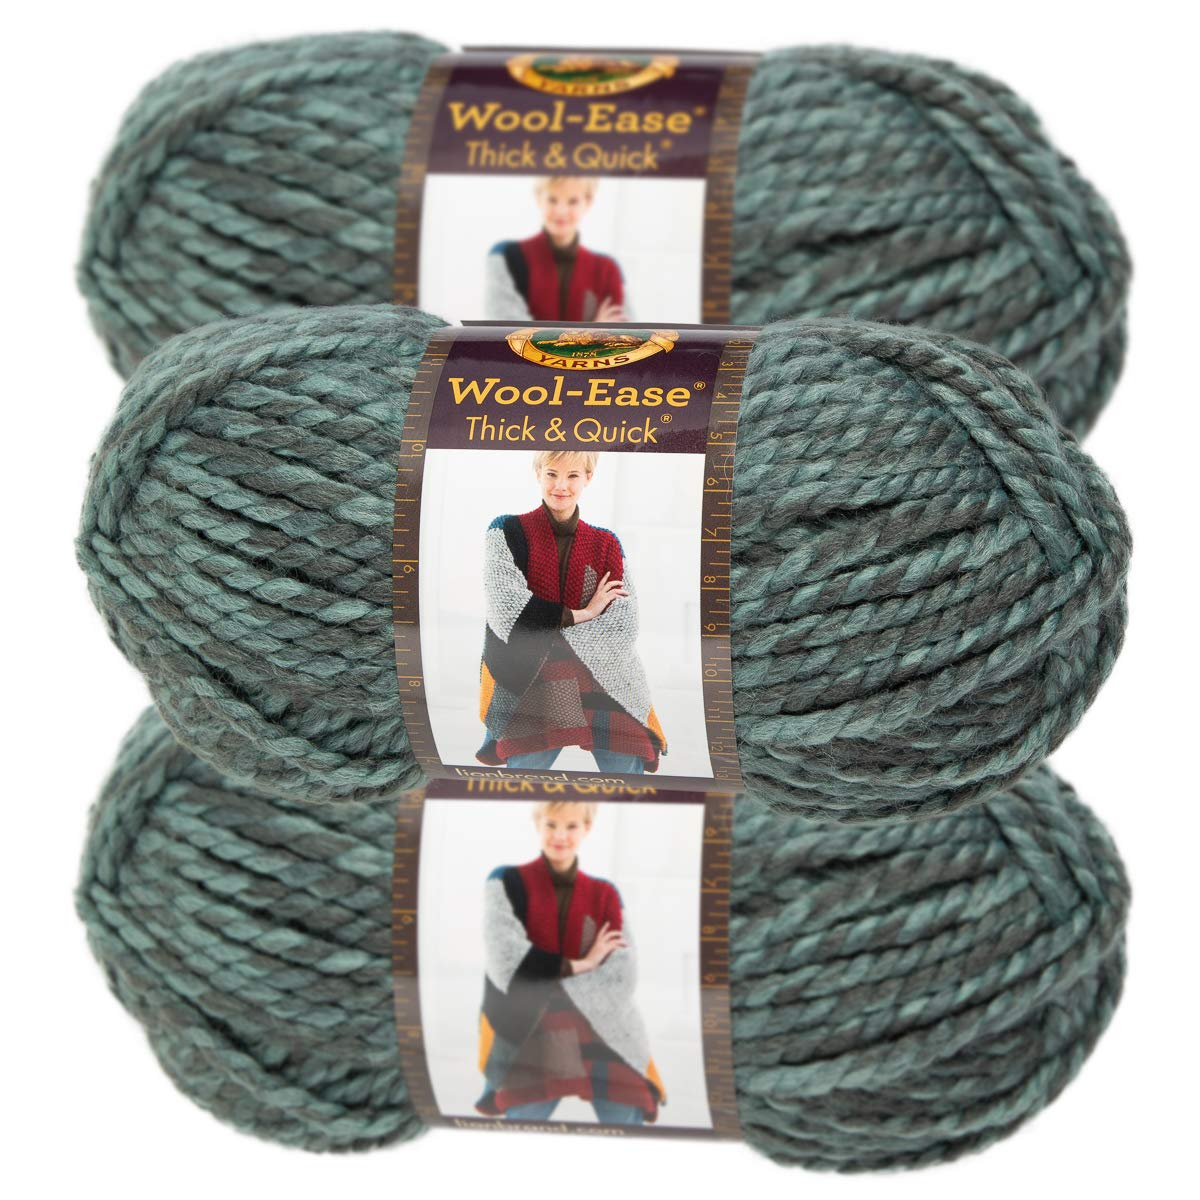 Wool-Ease Yarn Oxford Grey Set Of 10